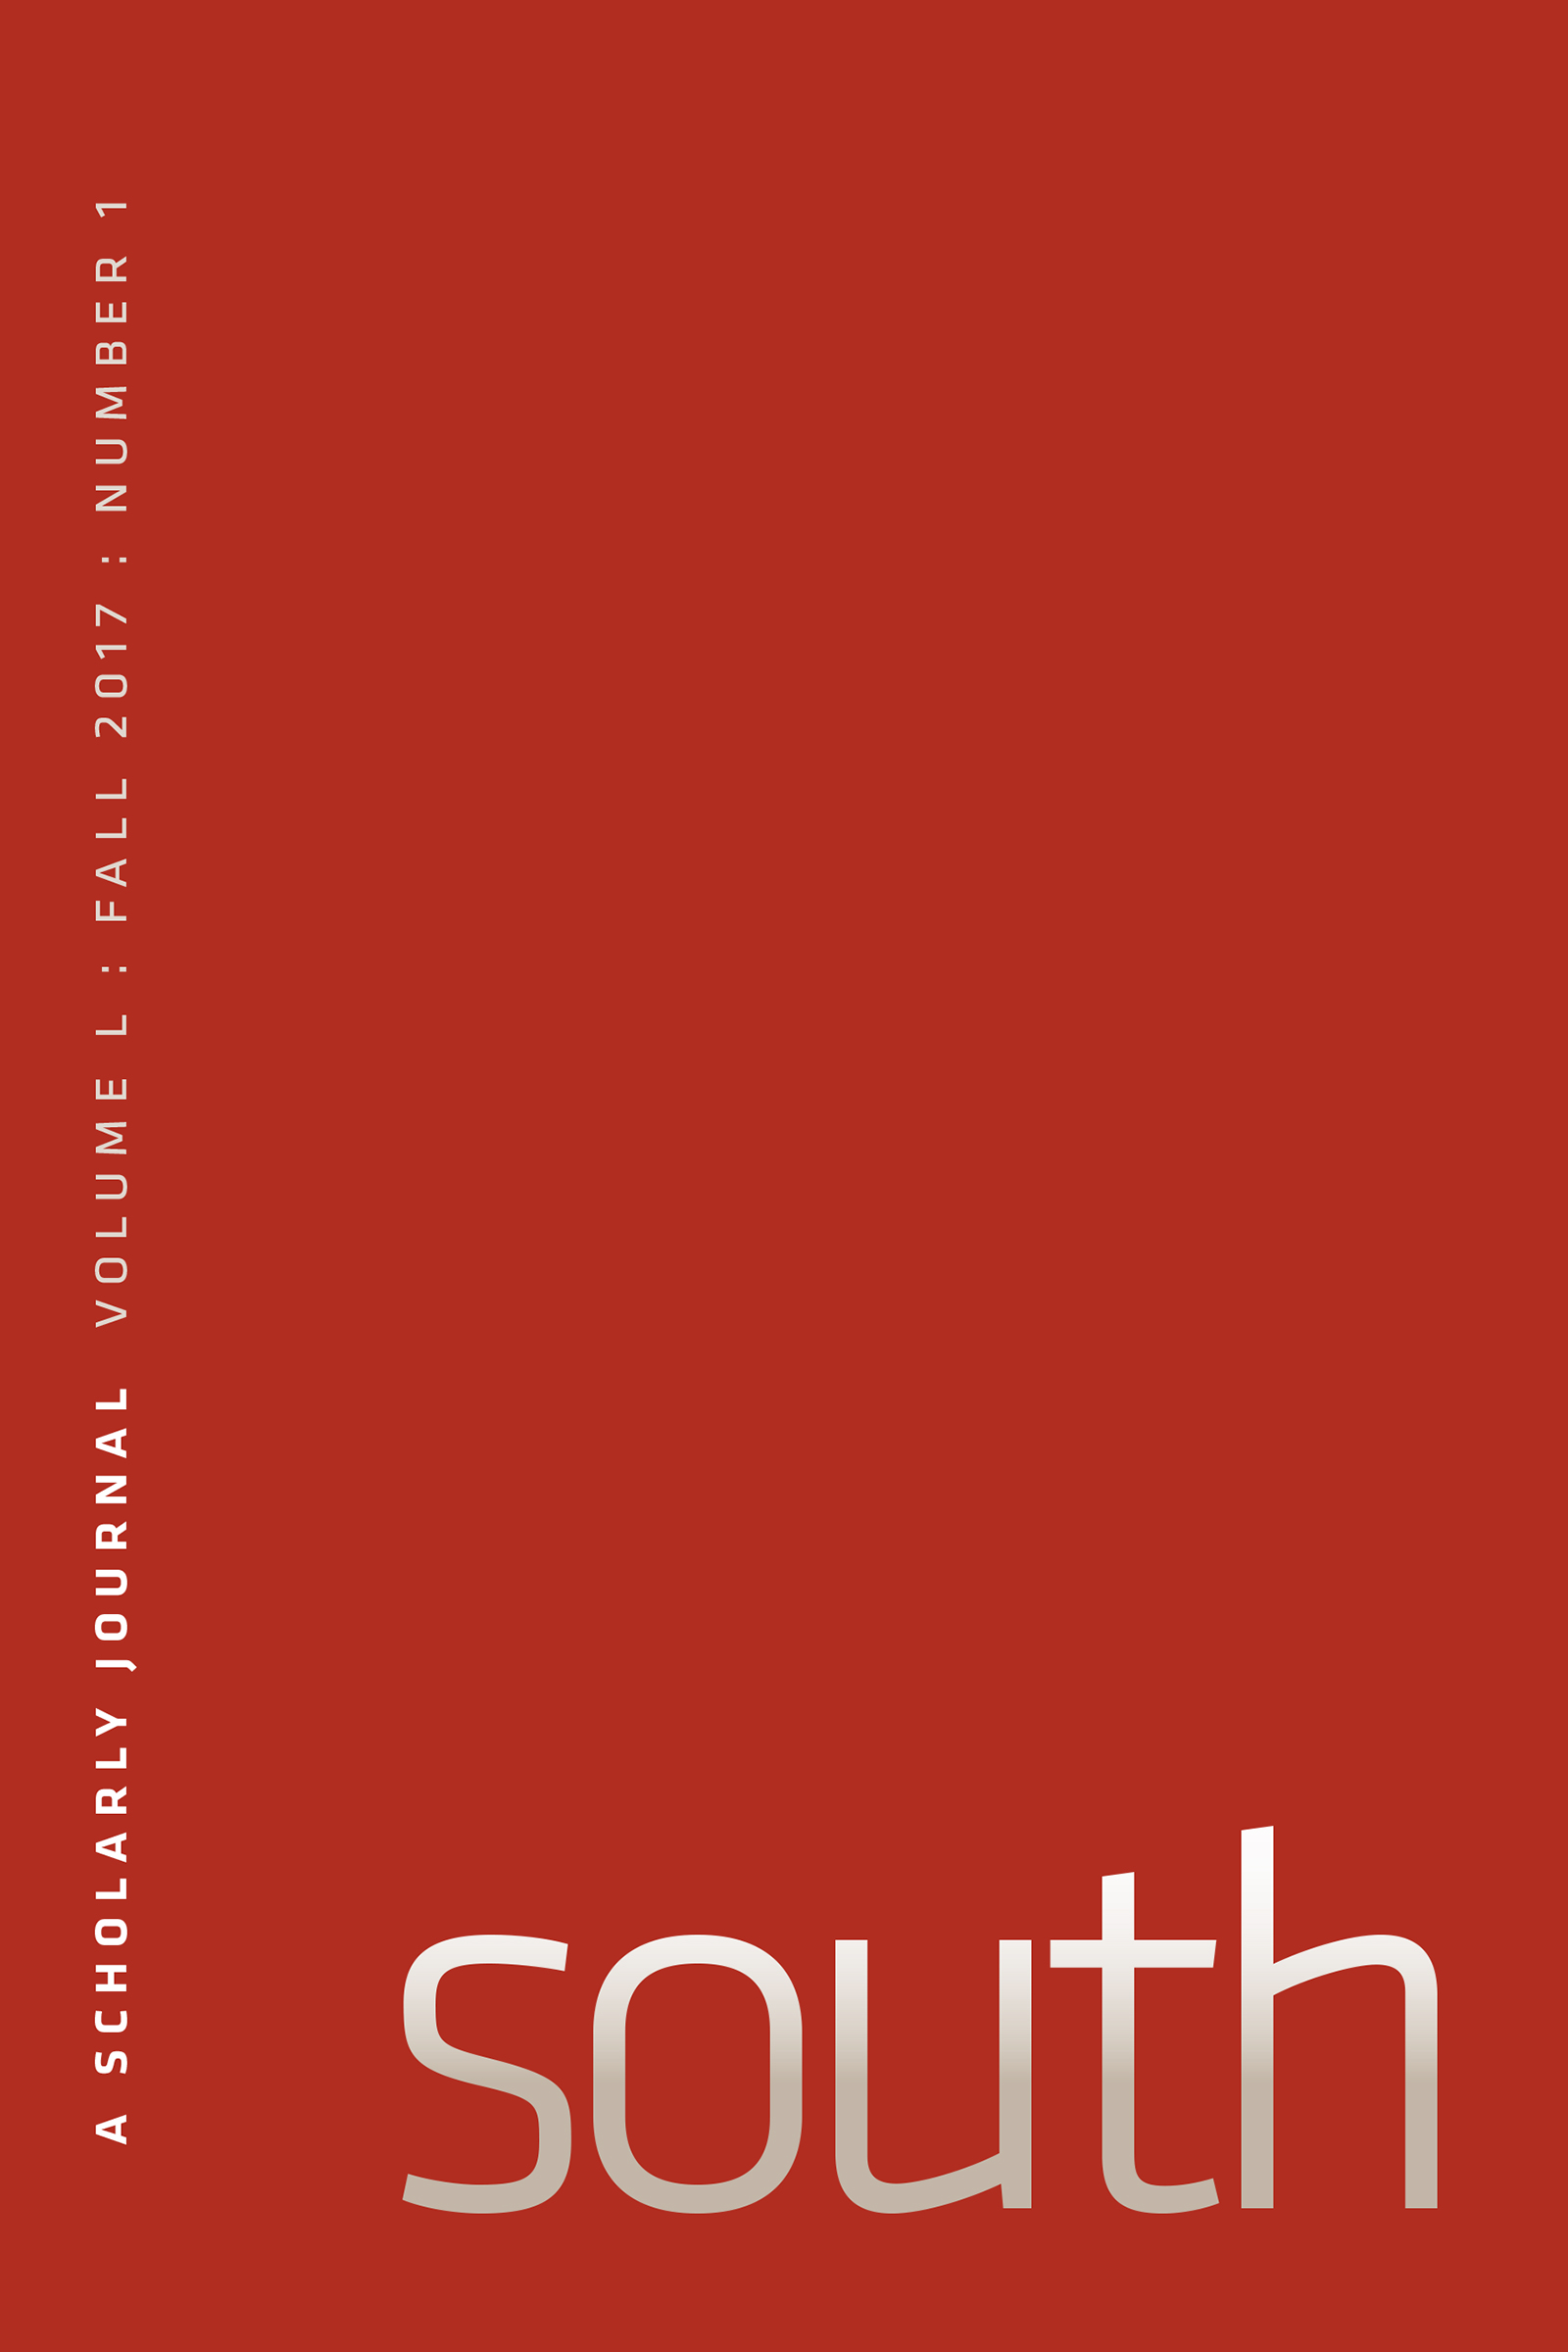 south: a scholarly journal, vol. 50 issue 1